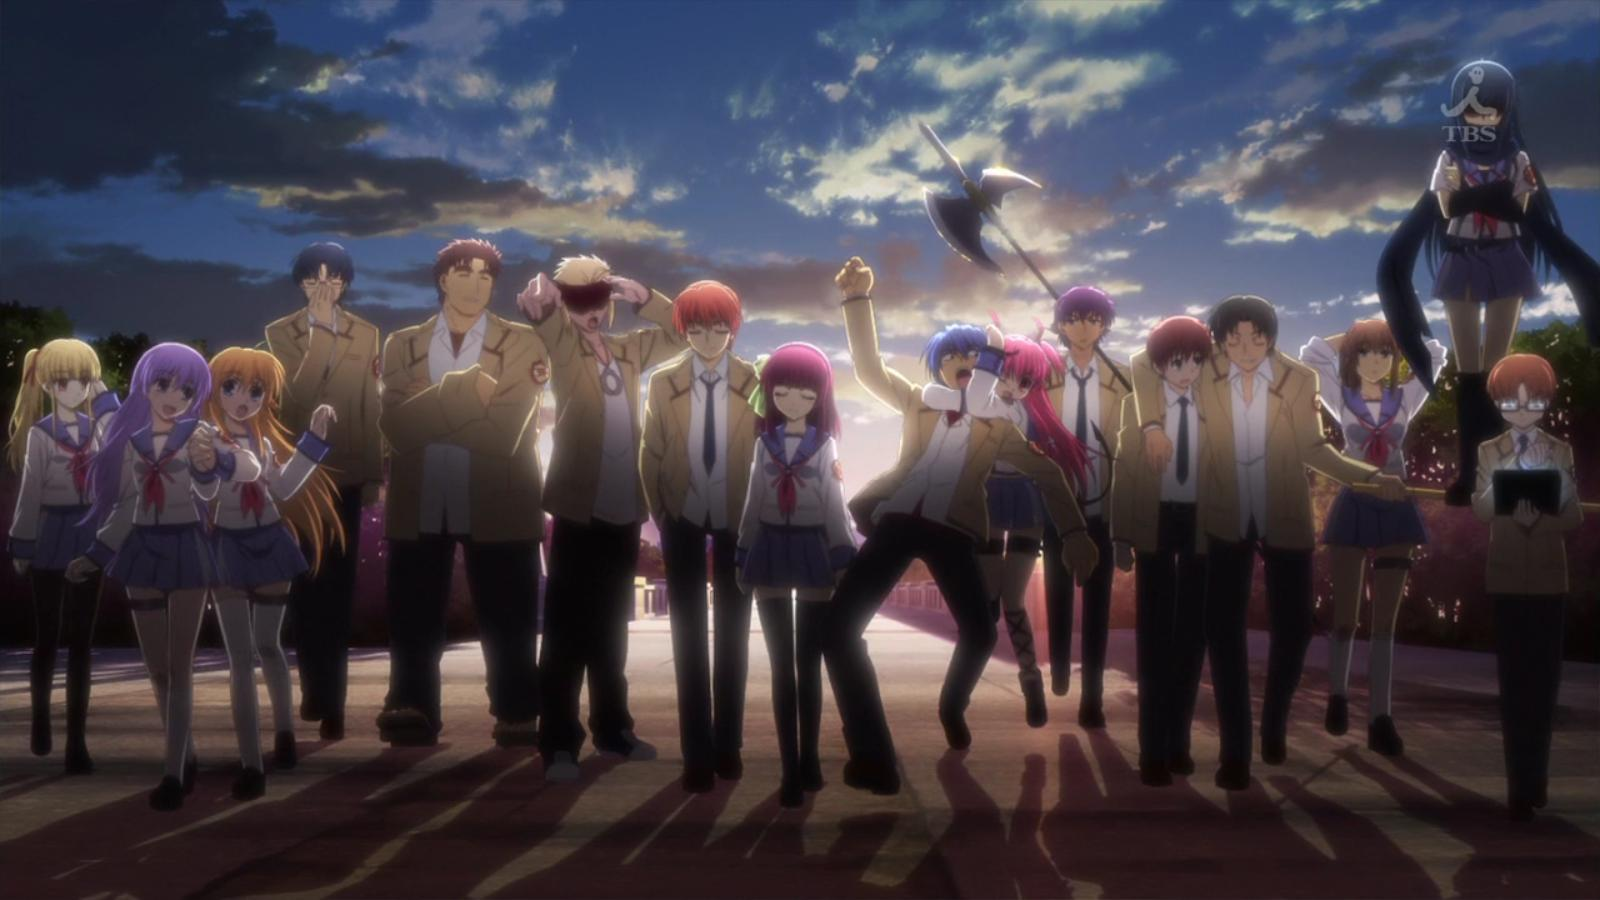 Free Download Are Viewing Angel Beats Hd Wallpaper Color Palette s Angel Beats 1600x900 For Your Desktop Mobile Tablet Explore 46 Angel Beats Wallpaper Hd Beats By Dre Wallpaper